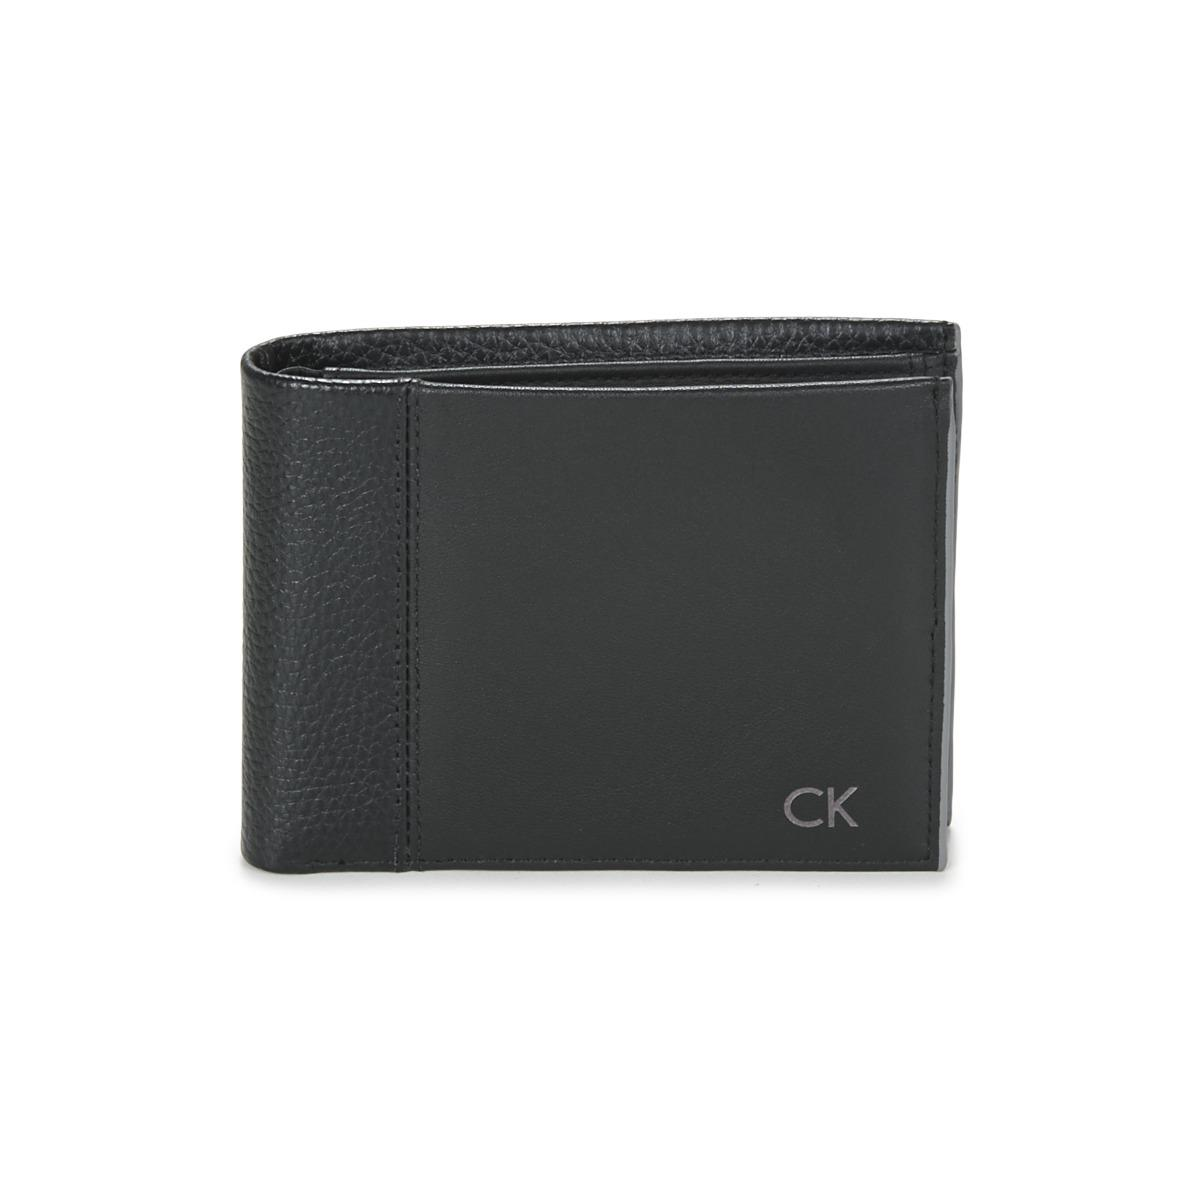 Cheap Top Quality Calvin Klein NATHAN GIFT BOX men's Purse wallet in Free Shipping Great Deals 5SDkKcnVu8